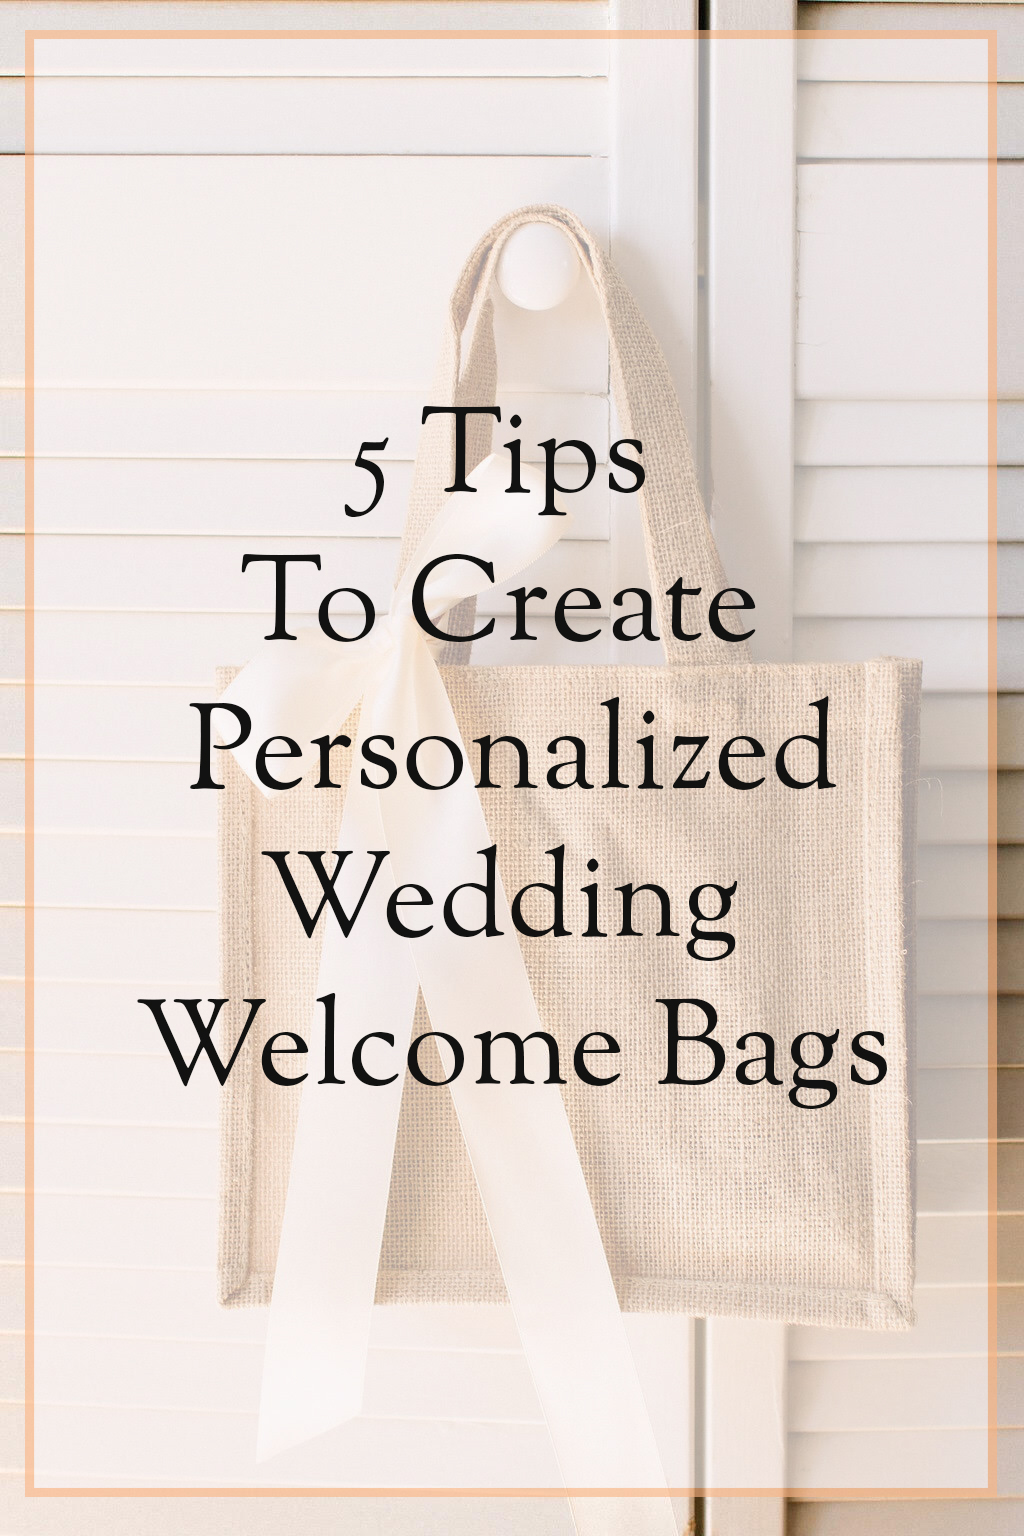 5 Tips for Personalized Welcome Bags // Heirloom Event Co.